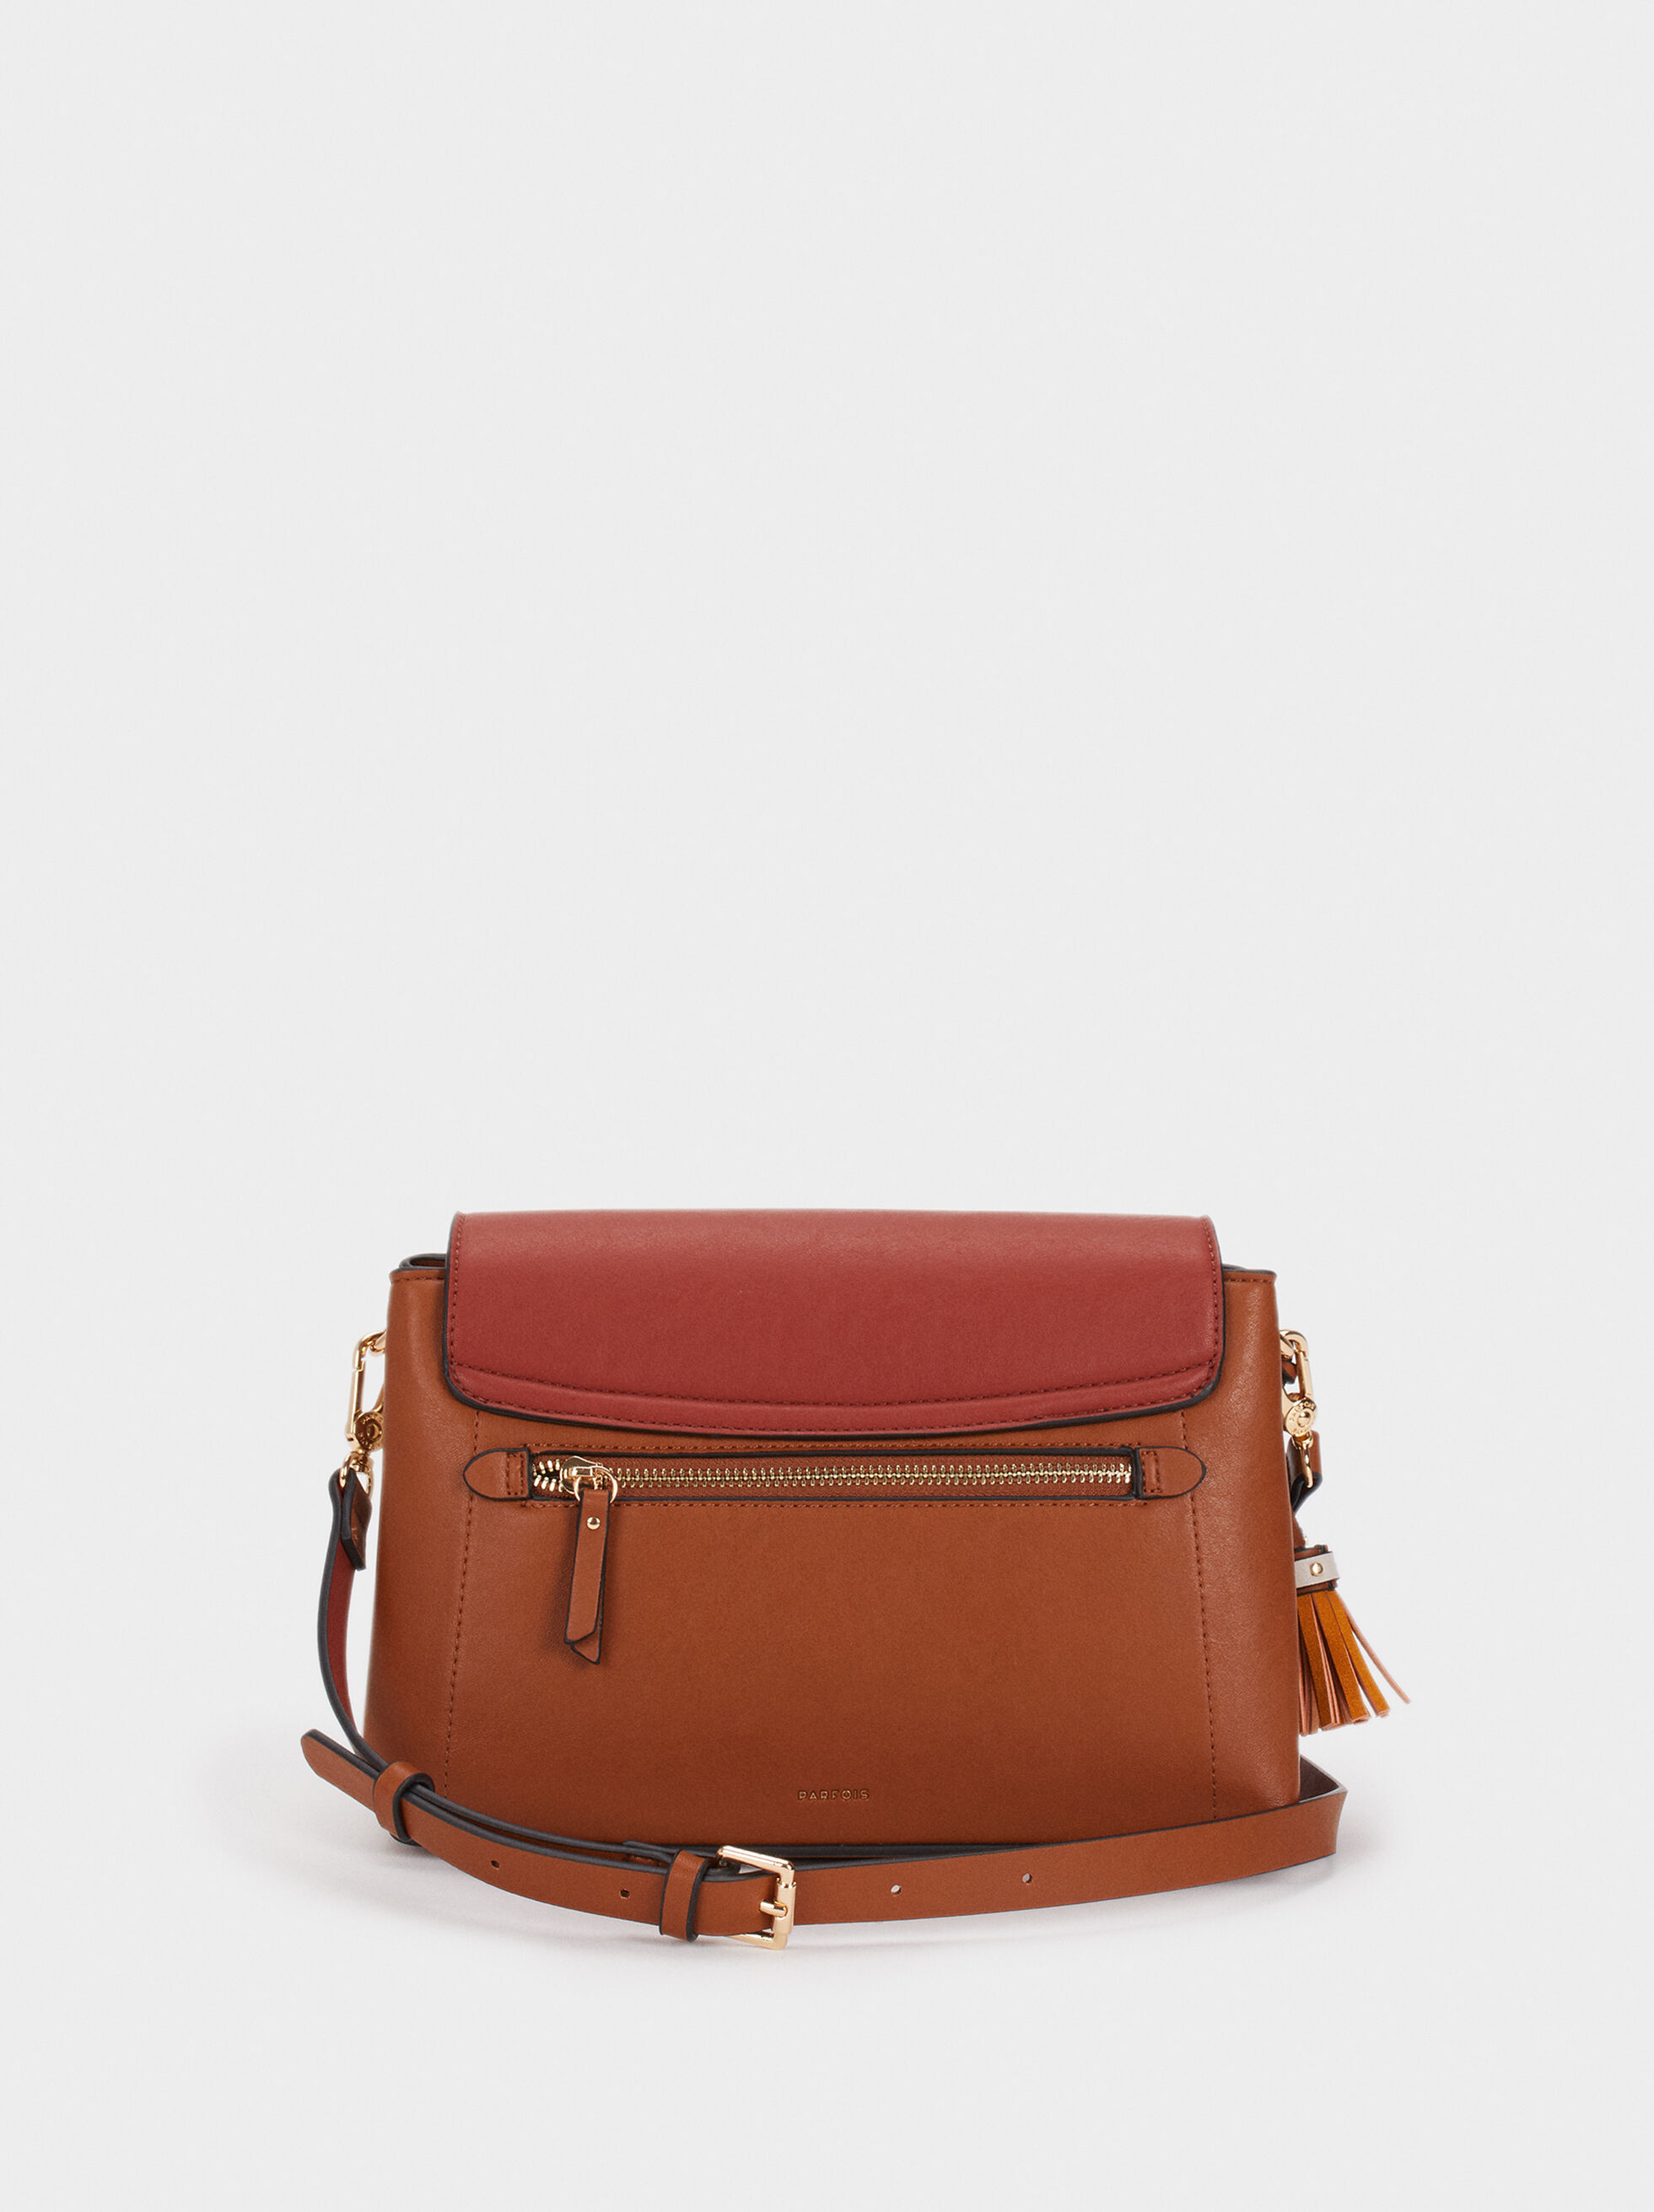 Elisa Cross Bag, Brick Red, hi-res